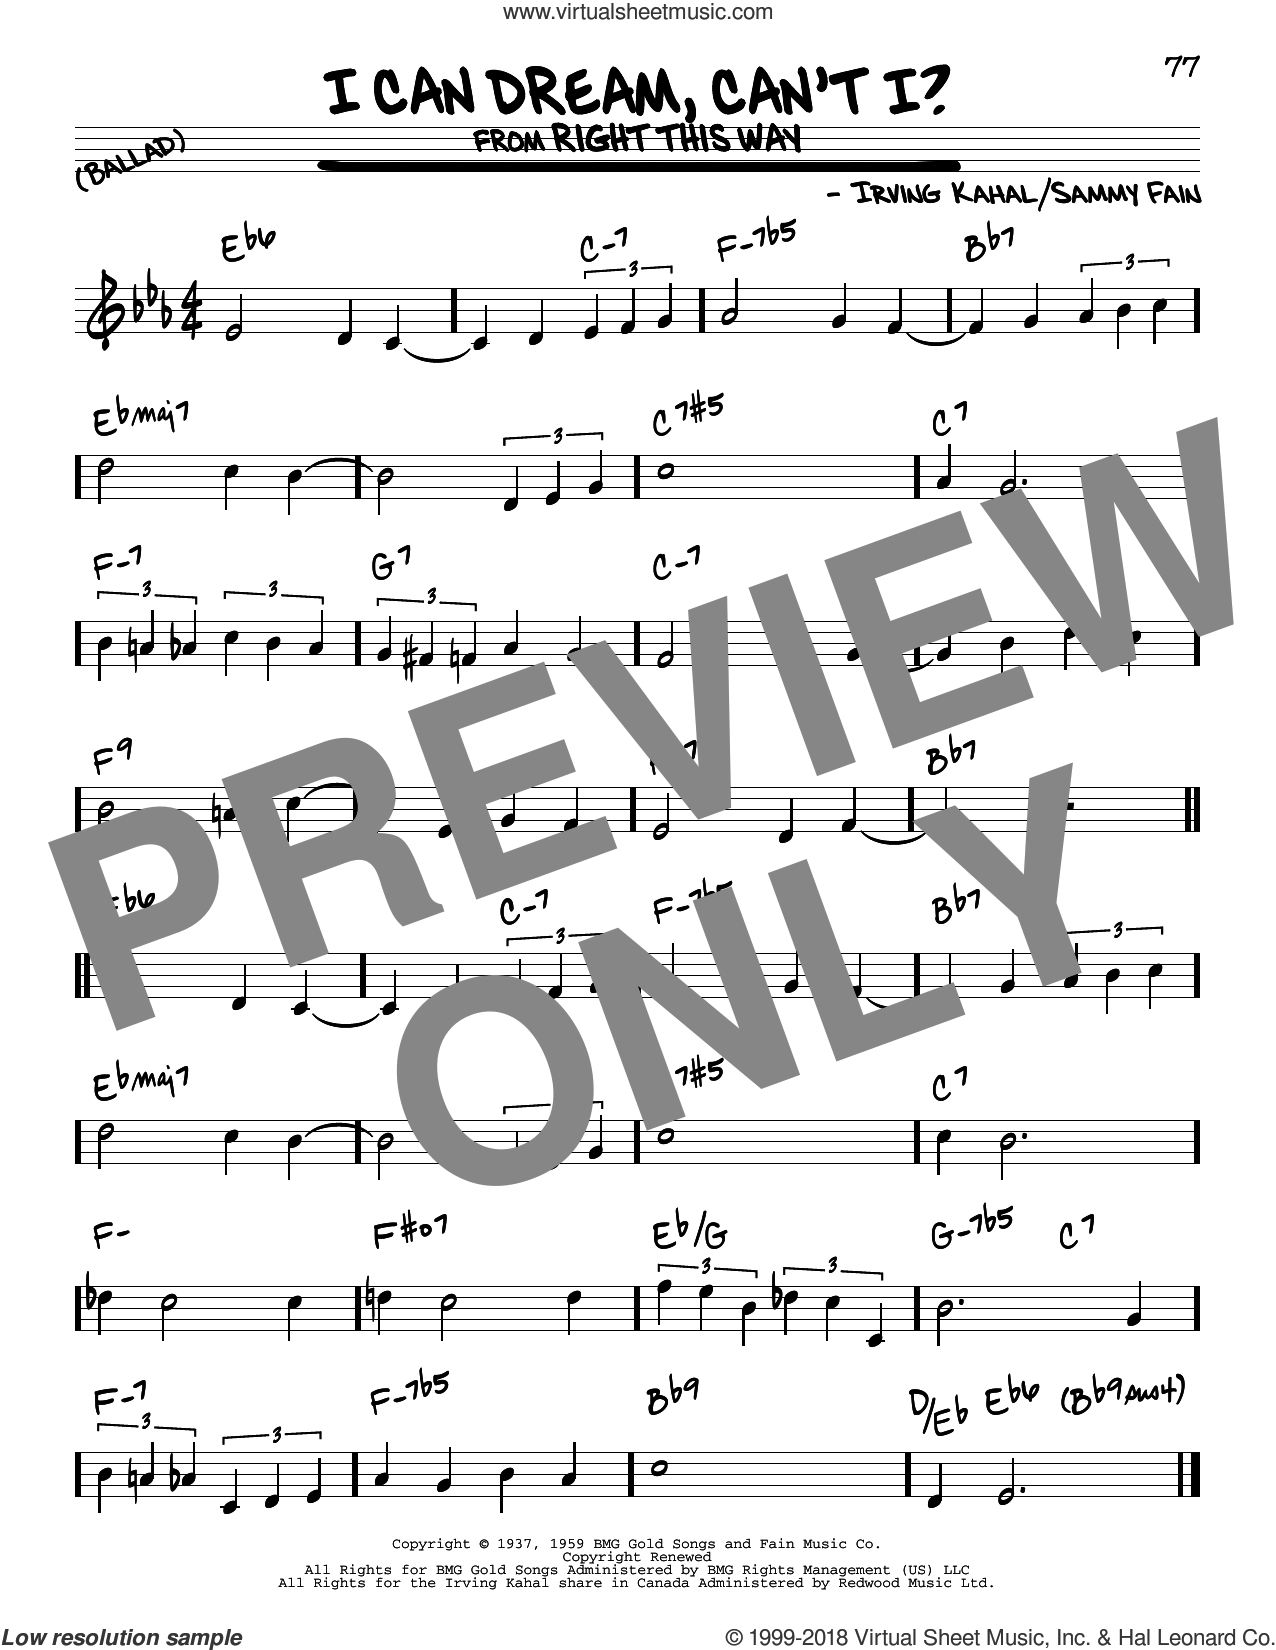 I Can Dream, Can't I? (from Right This Way) sheet music for voice and other instruments (real book) by The Andrews Sisters, Irving Kahal and Sammy Fain, intermediate skill level